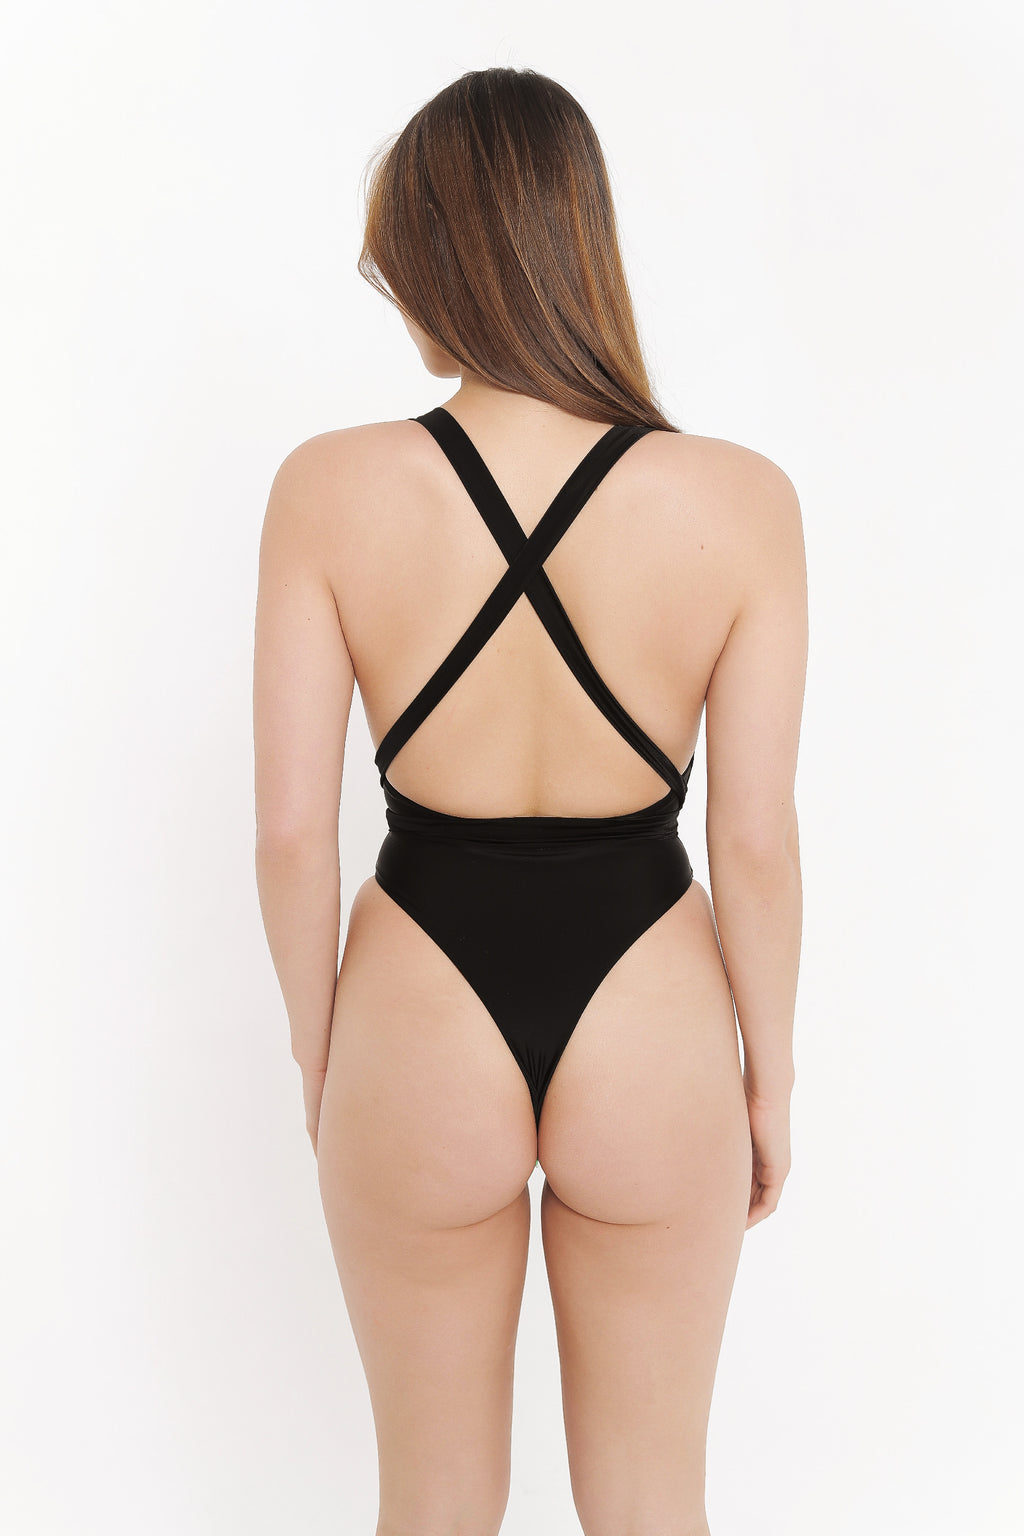 SARAH ONE PIECE - BLACK